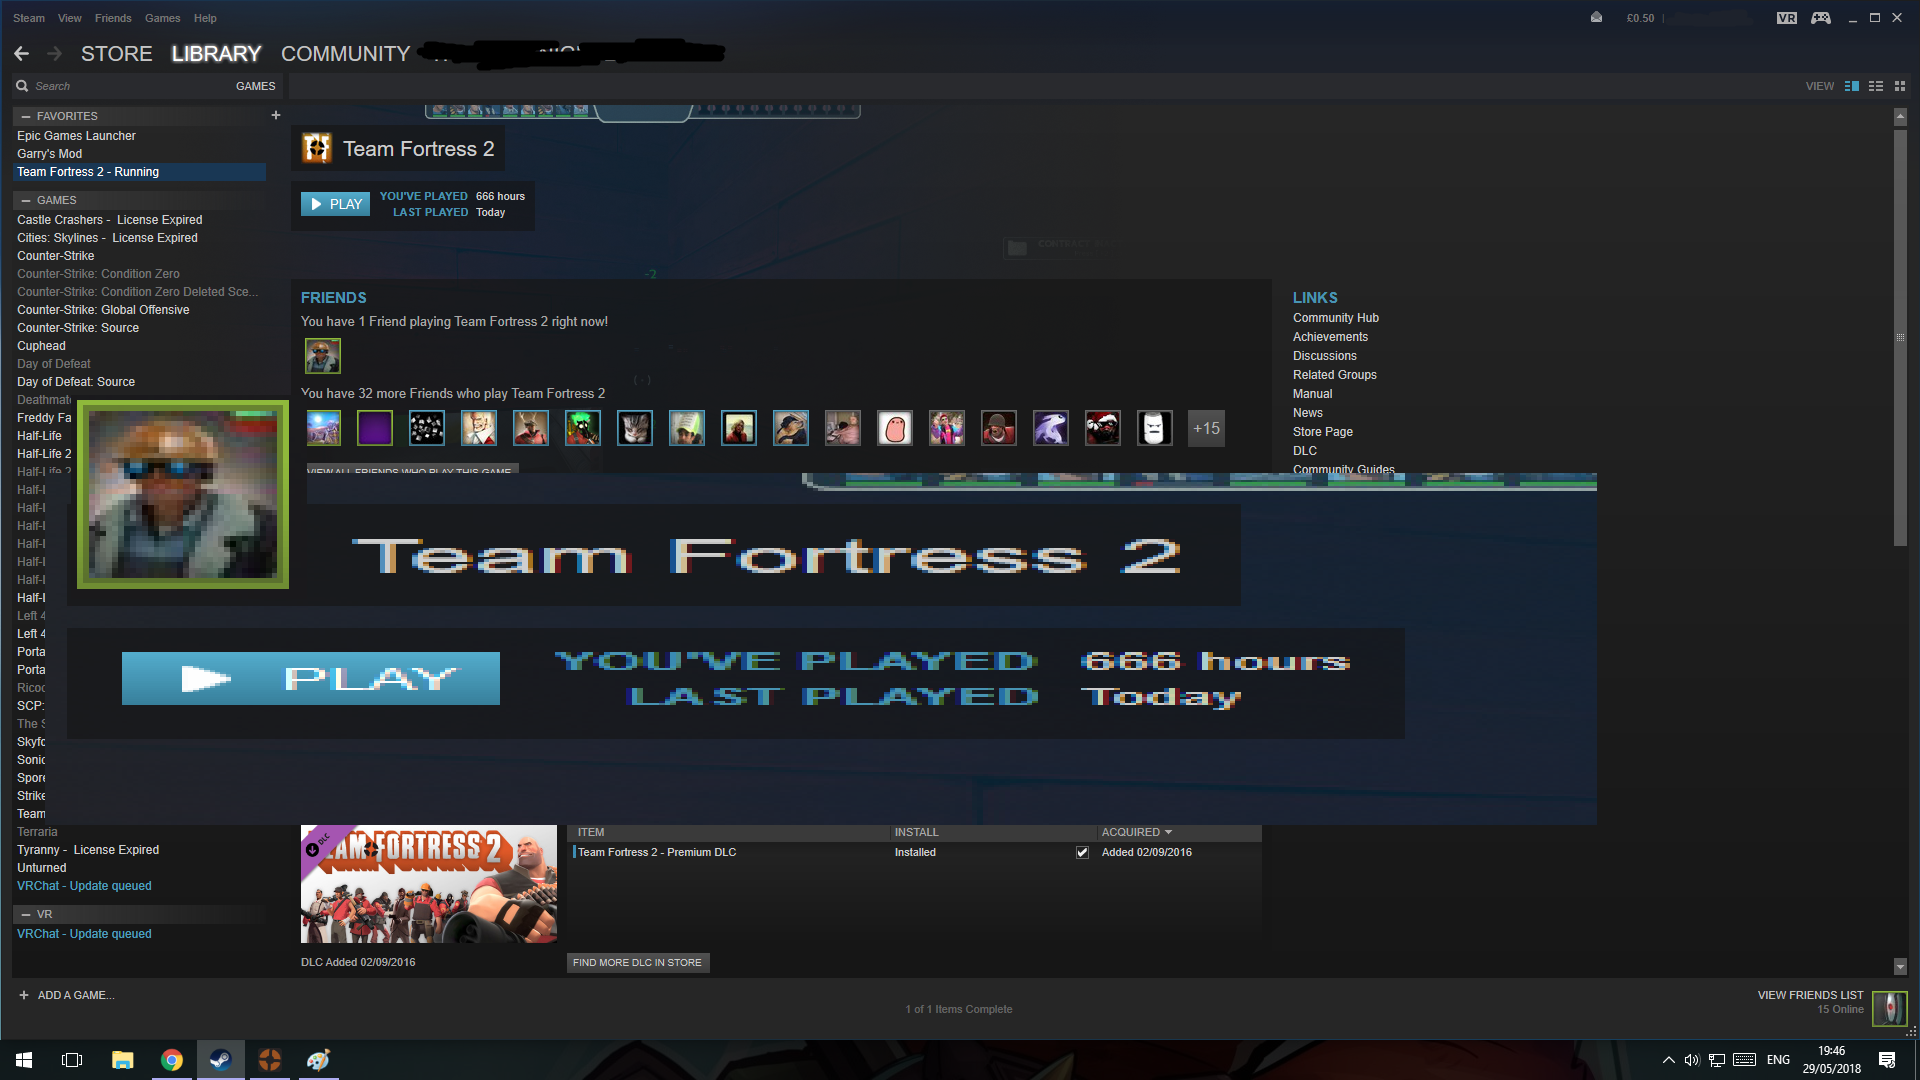 FINALLY #games #teamfortress2 #steam #tf2 #SteamNewRelease #gaming